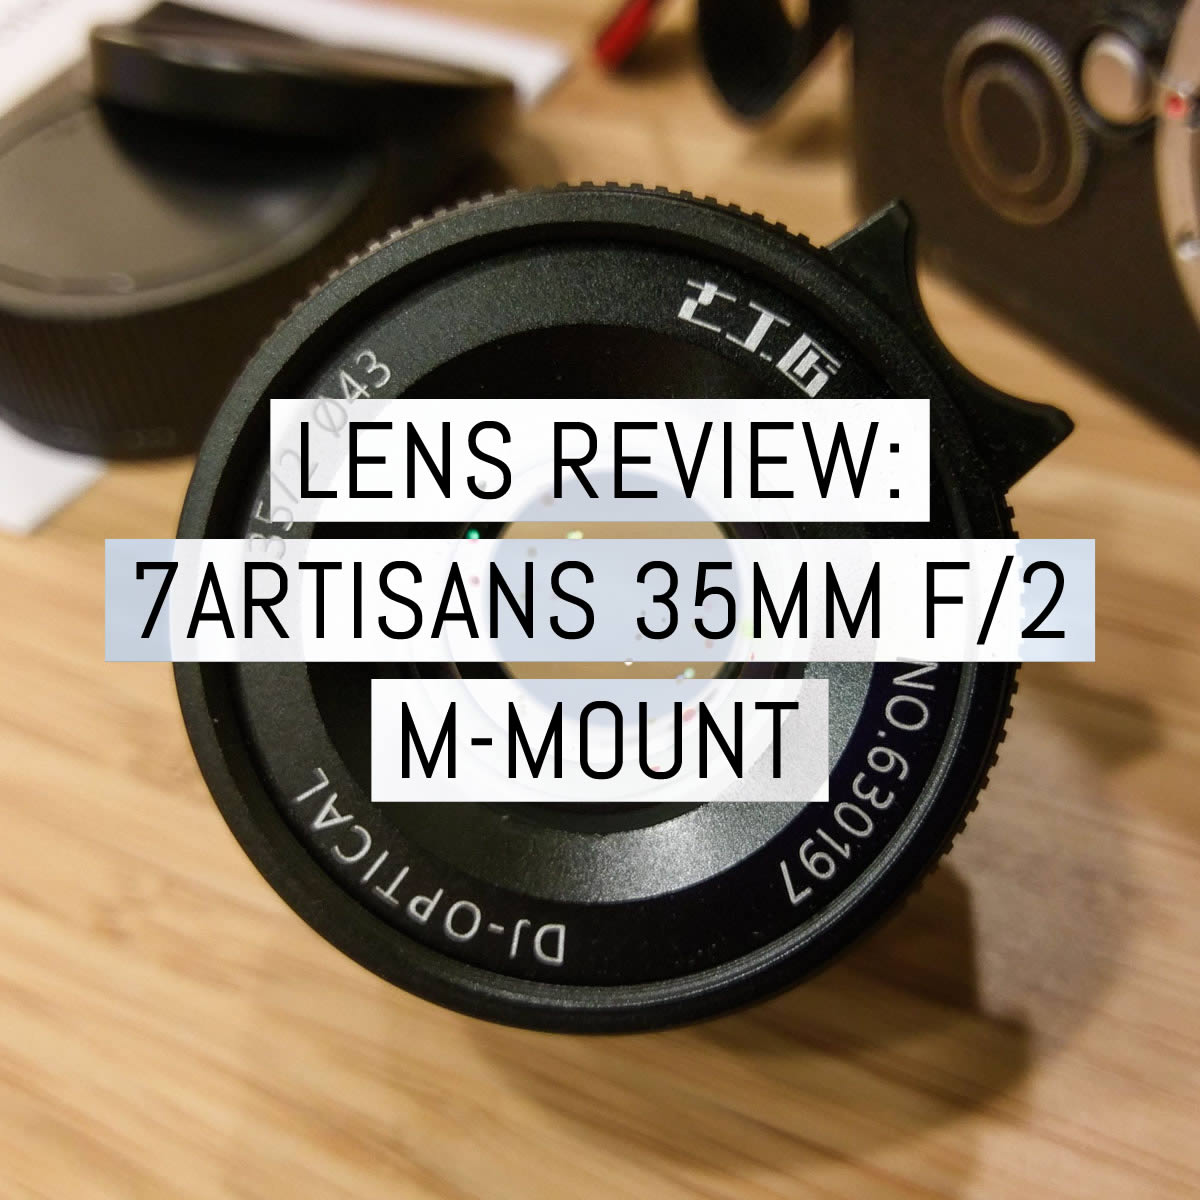 Lens review: the 7artisans 35mm f/2 Leica M-mount lens - first production batch exclusive review